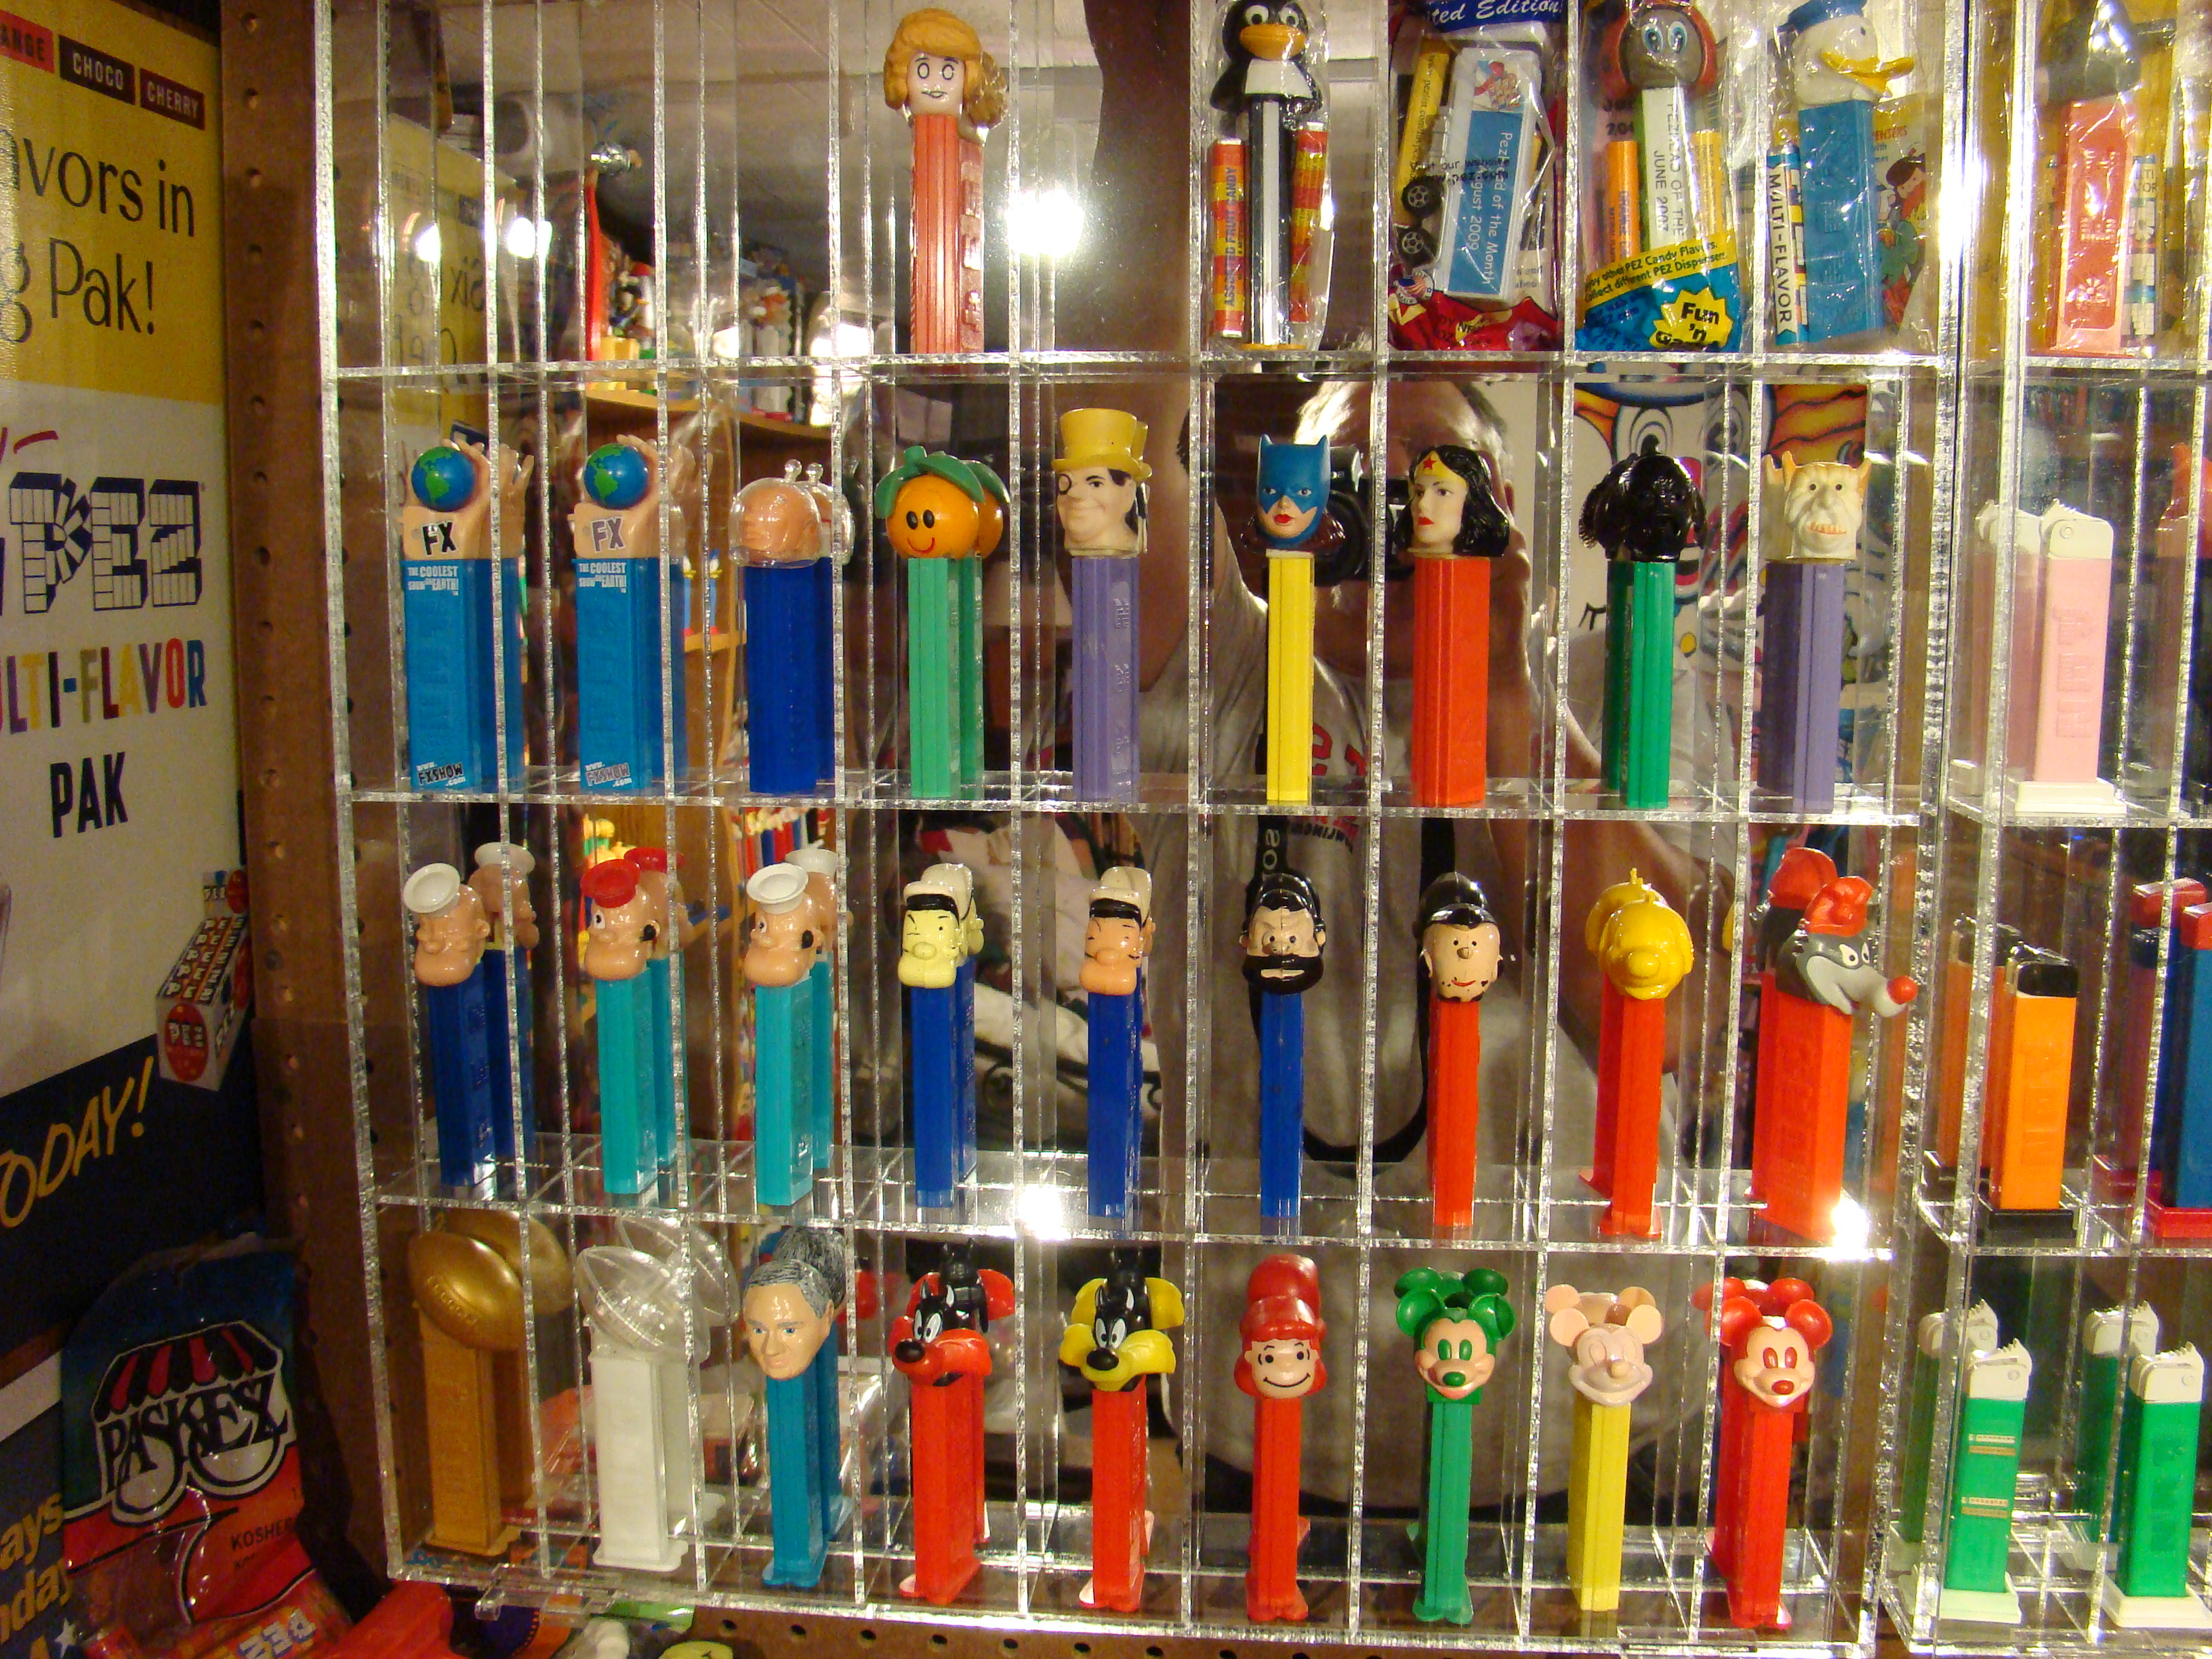 My Collection | Snailpez's Pez Emporium: https://snailpez.wordpress.com/my-collection